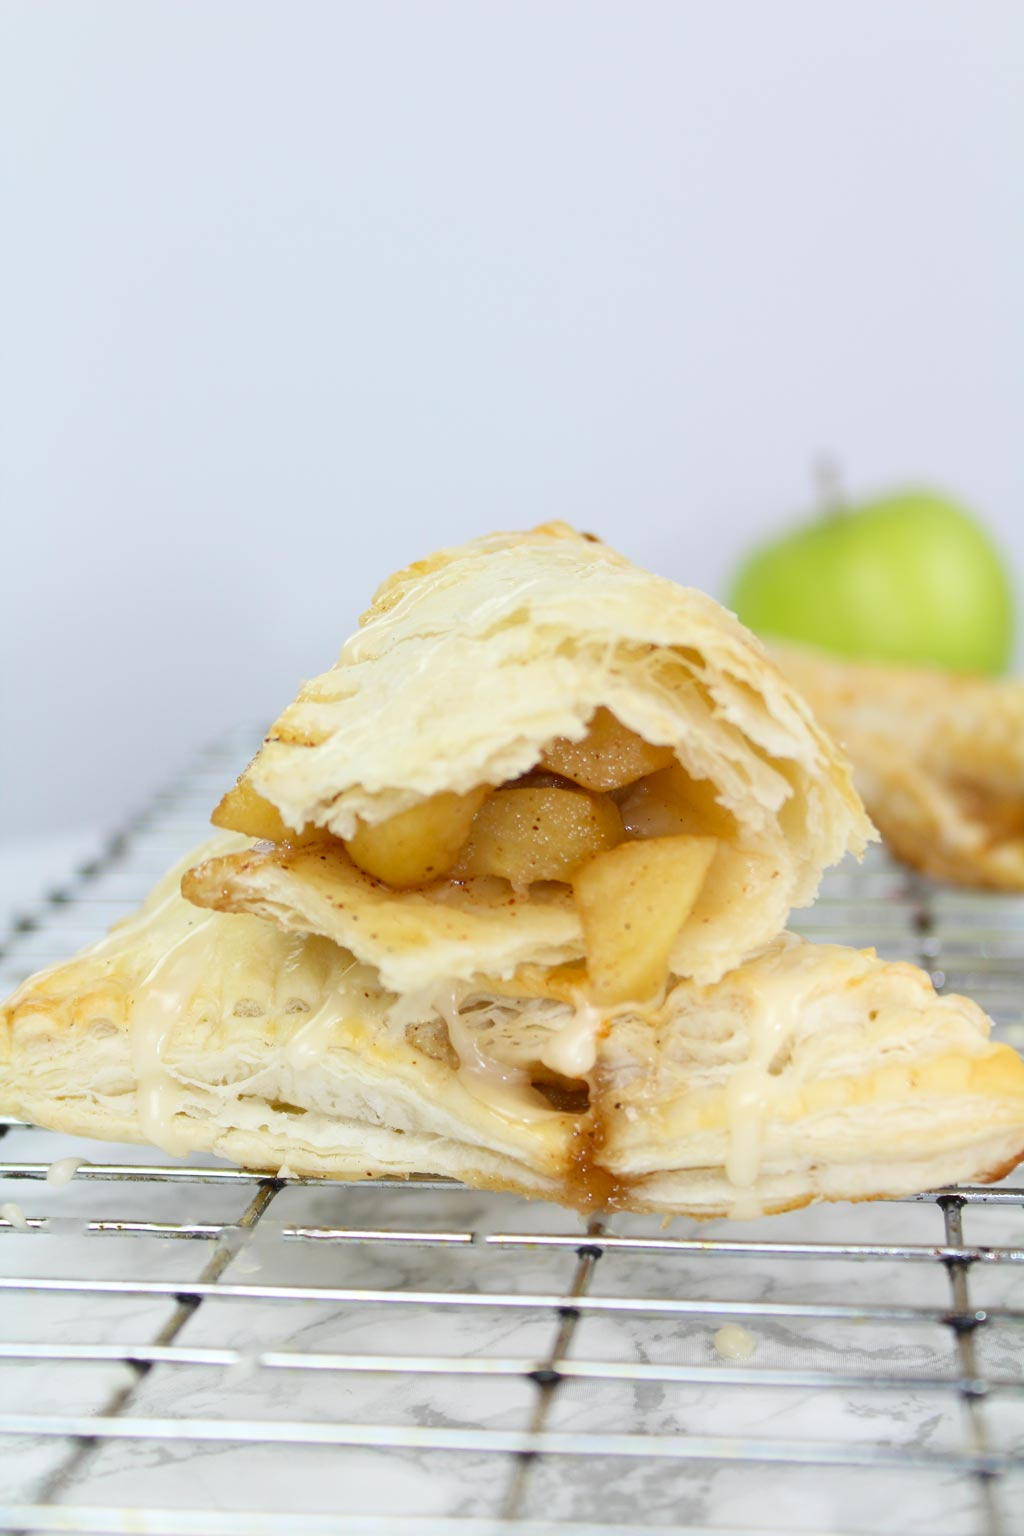 Vegan apple turnovers with puff pastry